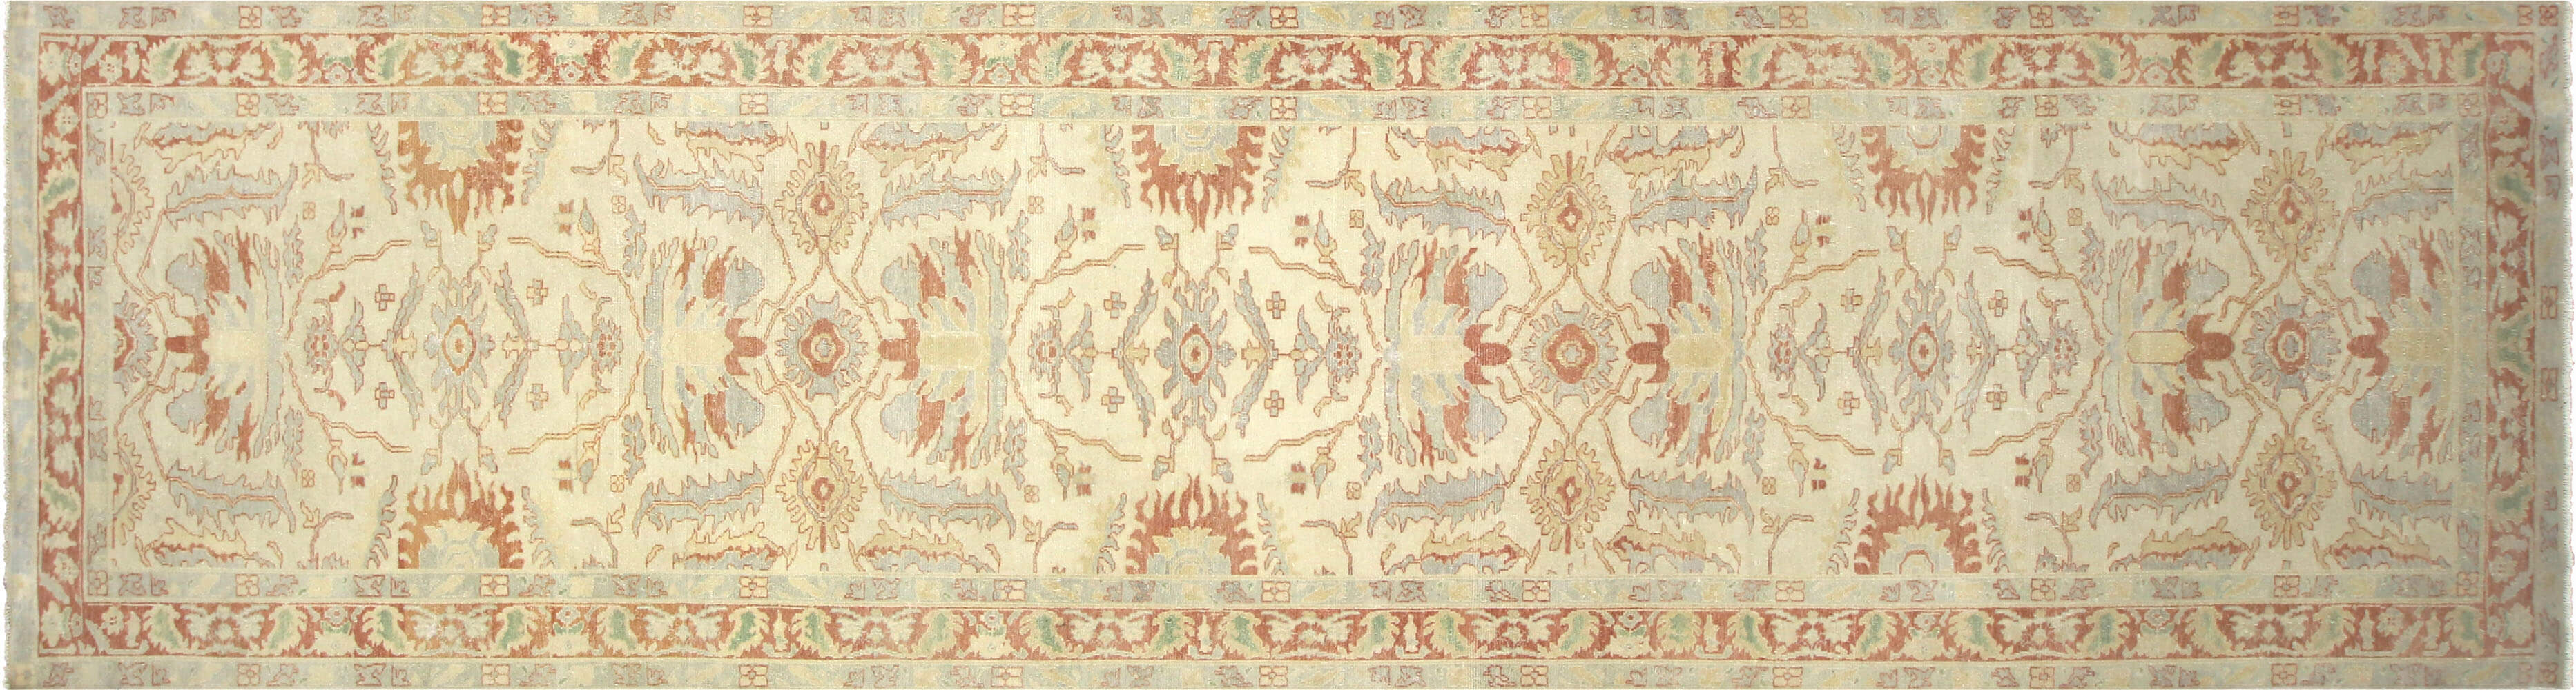 "Recently Woven Egyptian Sultanabad Carpet - 4'10"" x 18'2"""